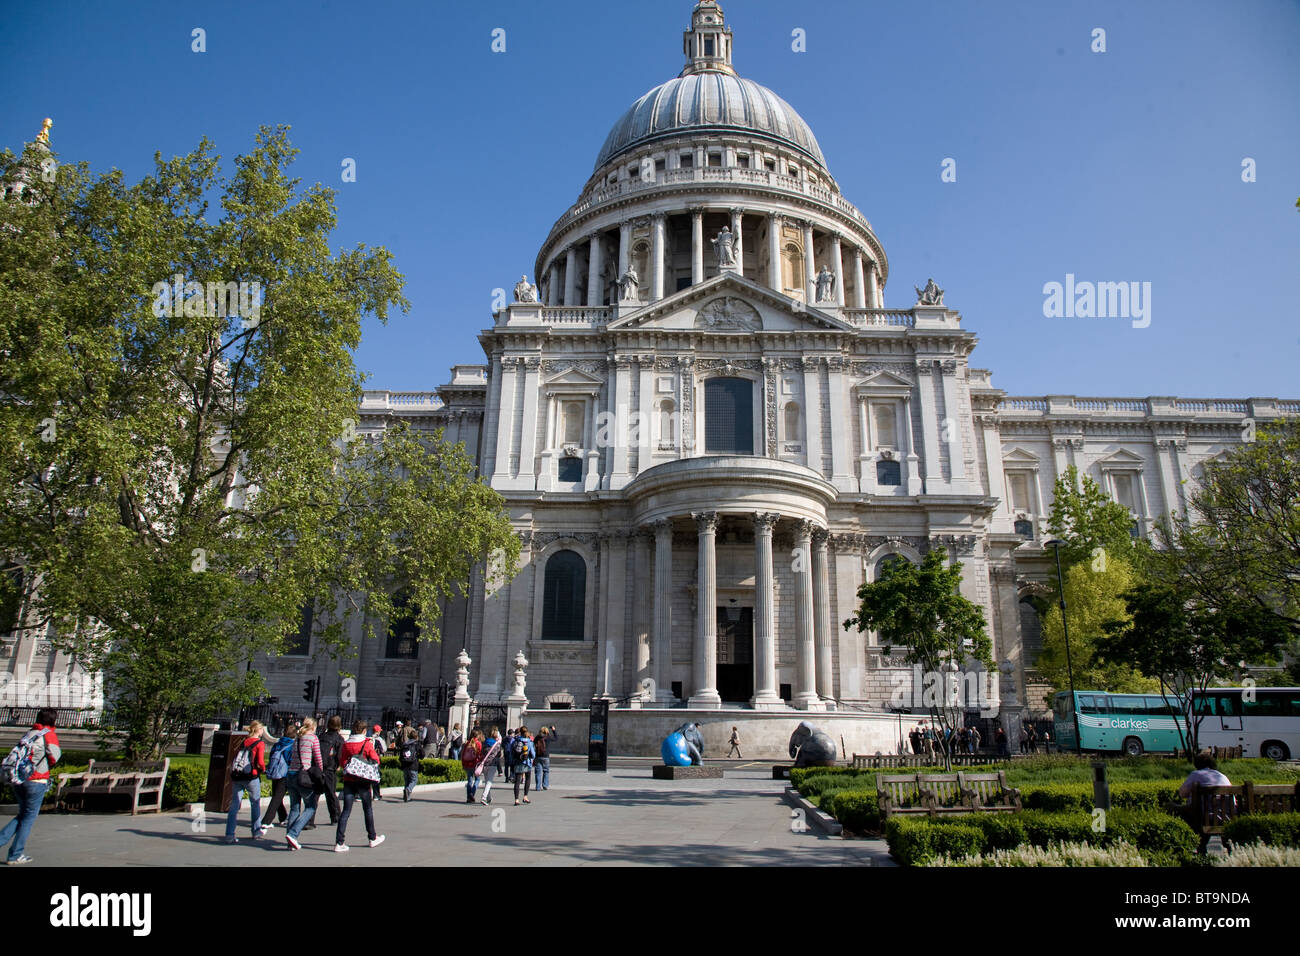 Saint Paul's Cathedral. City of London, England - Stock Image